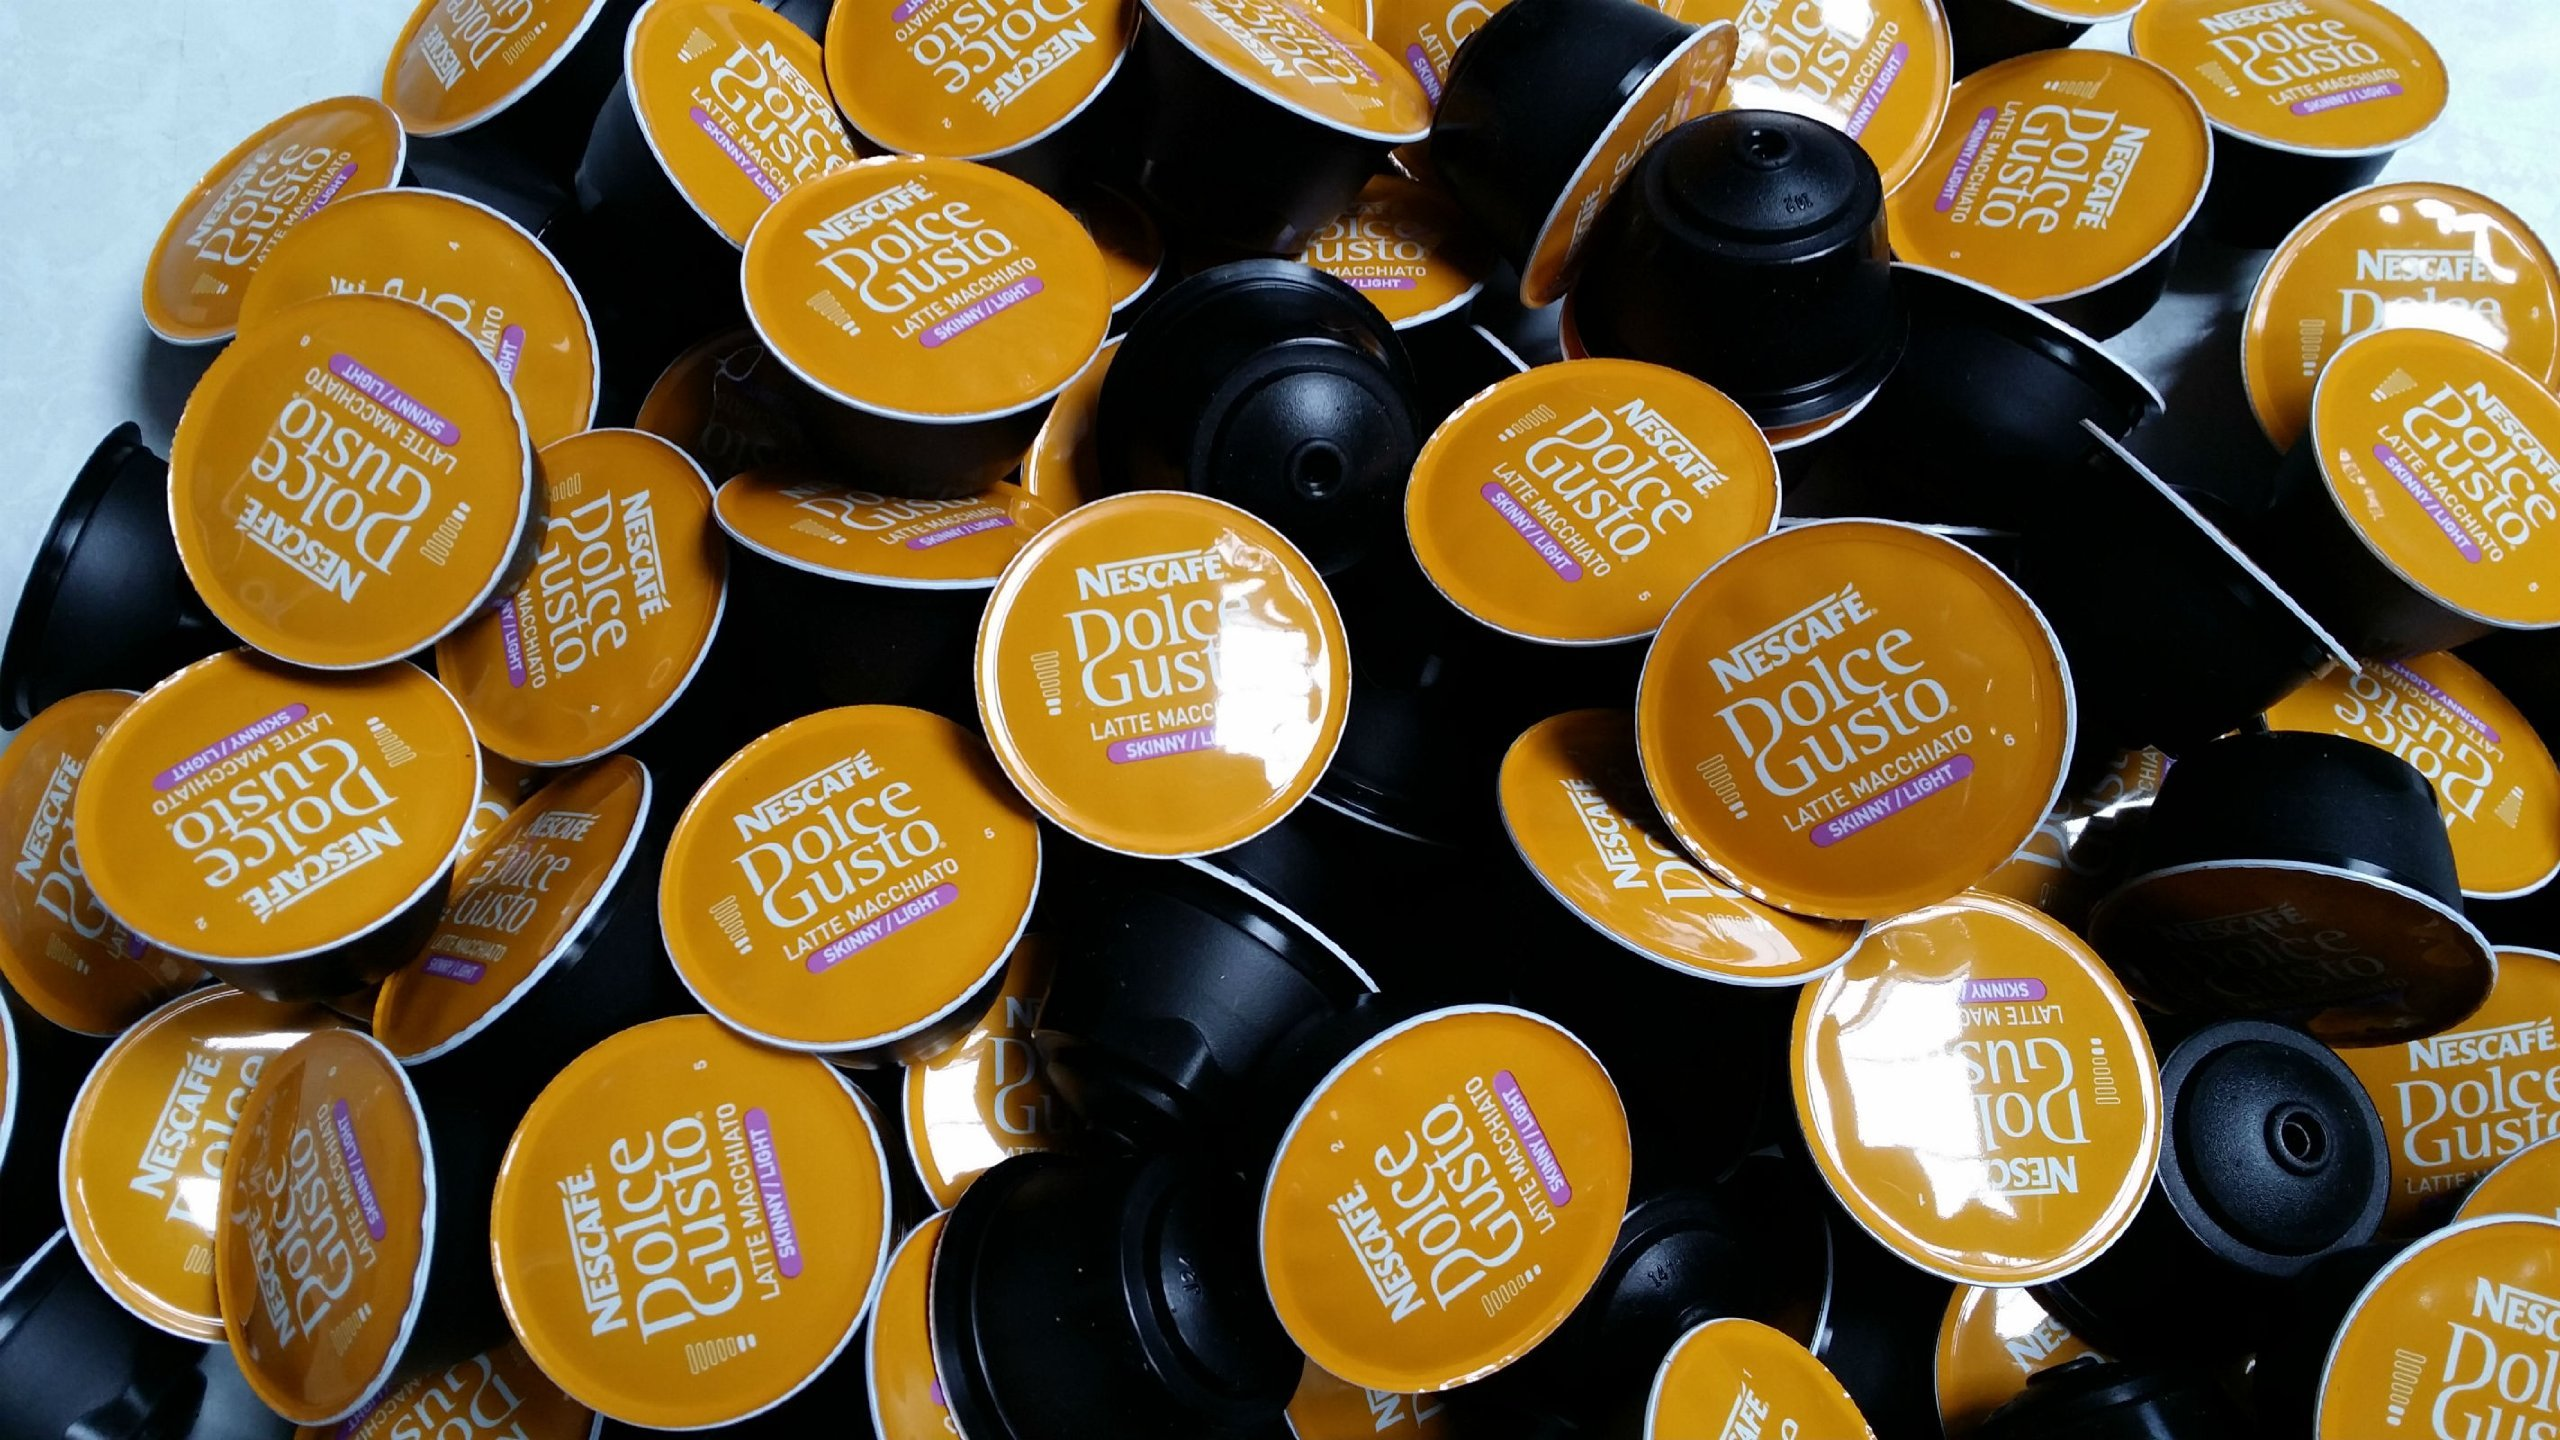 Dolce Gusto 50 X Nescafe Skinny Latte Coffee Pods Only No Milk Pods Sold Loose